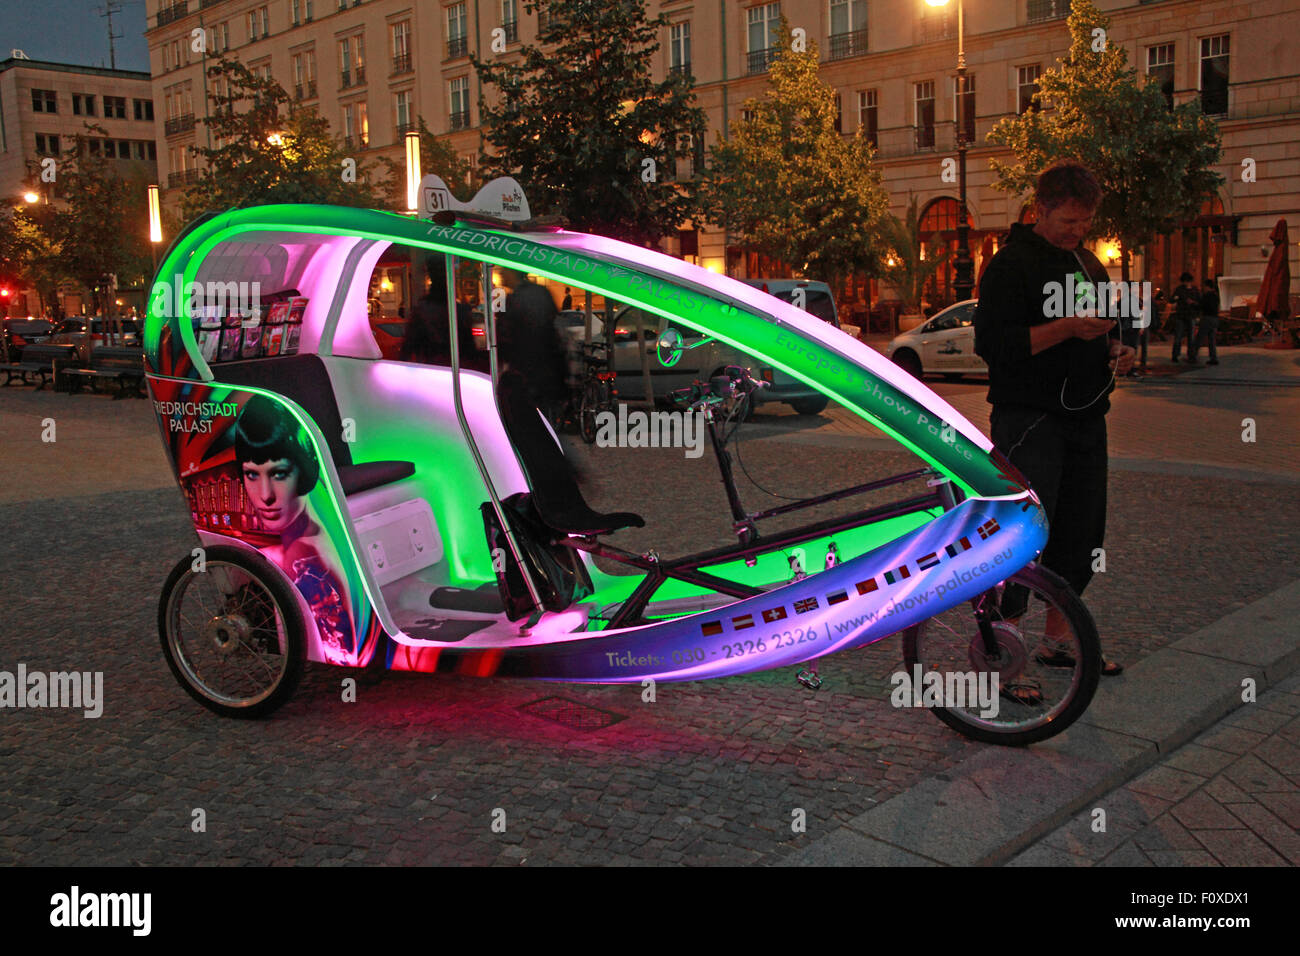 lights,on,bike,taxi,bicycle,bicycles,bikes,cab,cabs,central,cities,culture,cycle,europe,festival,festivals,historic,illuminated,illumination,interest,interesting,landmark,light,lighting,lightings,lights,lit,night,nights,rickshaws,sightseeing,square,squares,trip,taxis,tourism,tourists,town,towns,GoTonySmith,traffic,transport,transportation,travel,velotaxi,velotaxis,wheel,wheels,driver,owner,two,seat,seater,2seater,Deutsche,Deutschland,Buy Pictures of,Buy Images Of,Two seater,Two seats